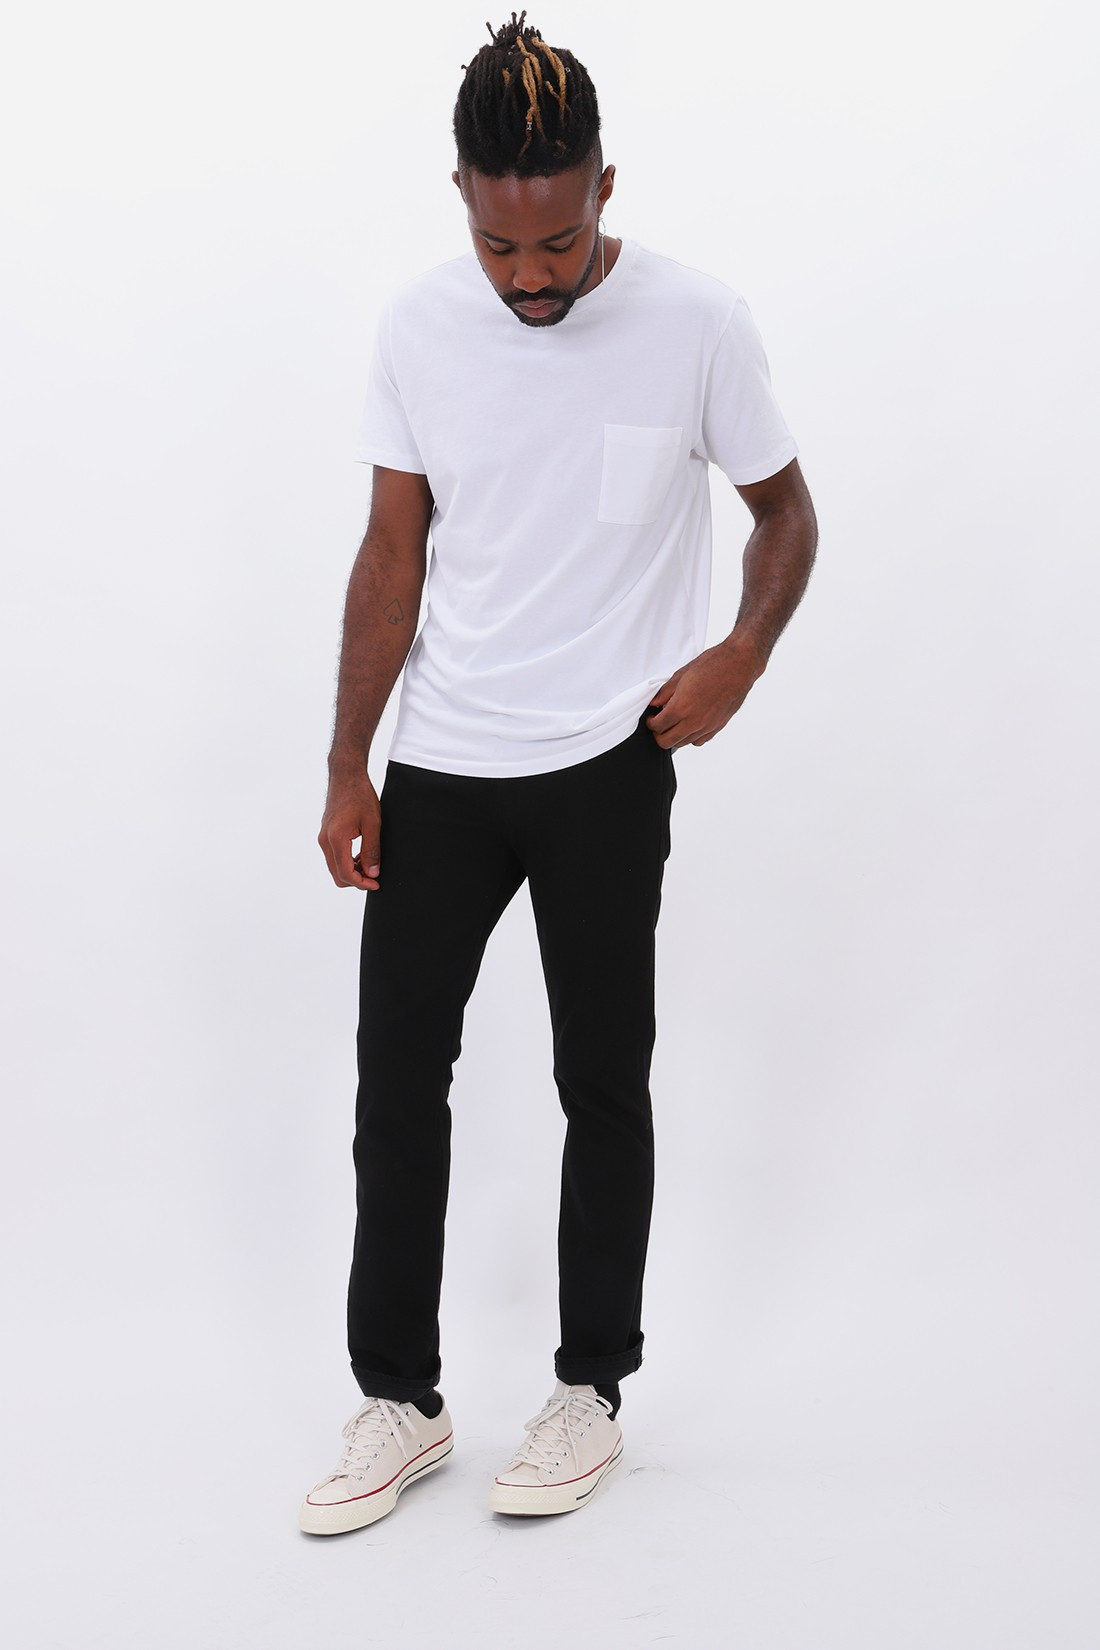 LEVI'S MADE & CRAFTED / Lmc 511 black denim Rinsed